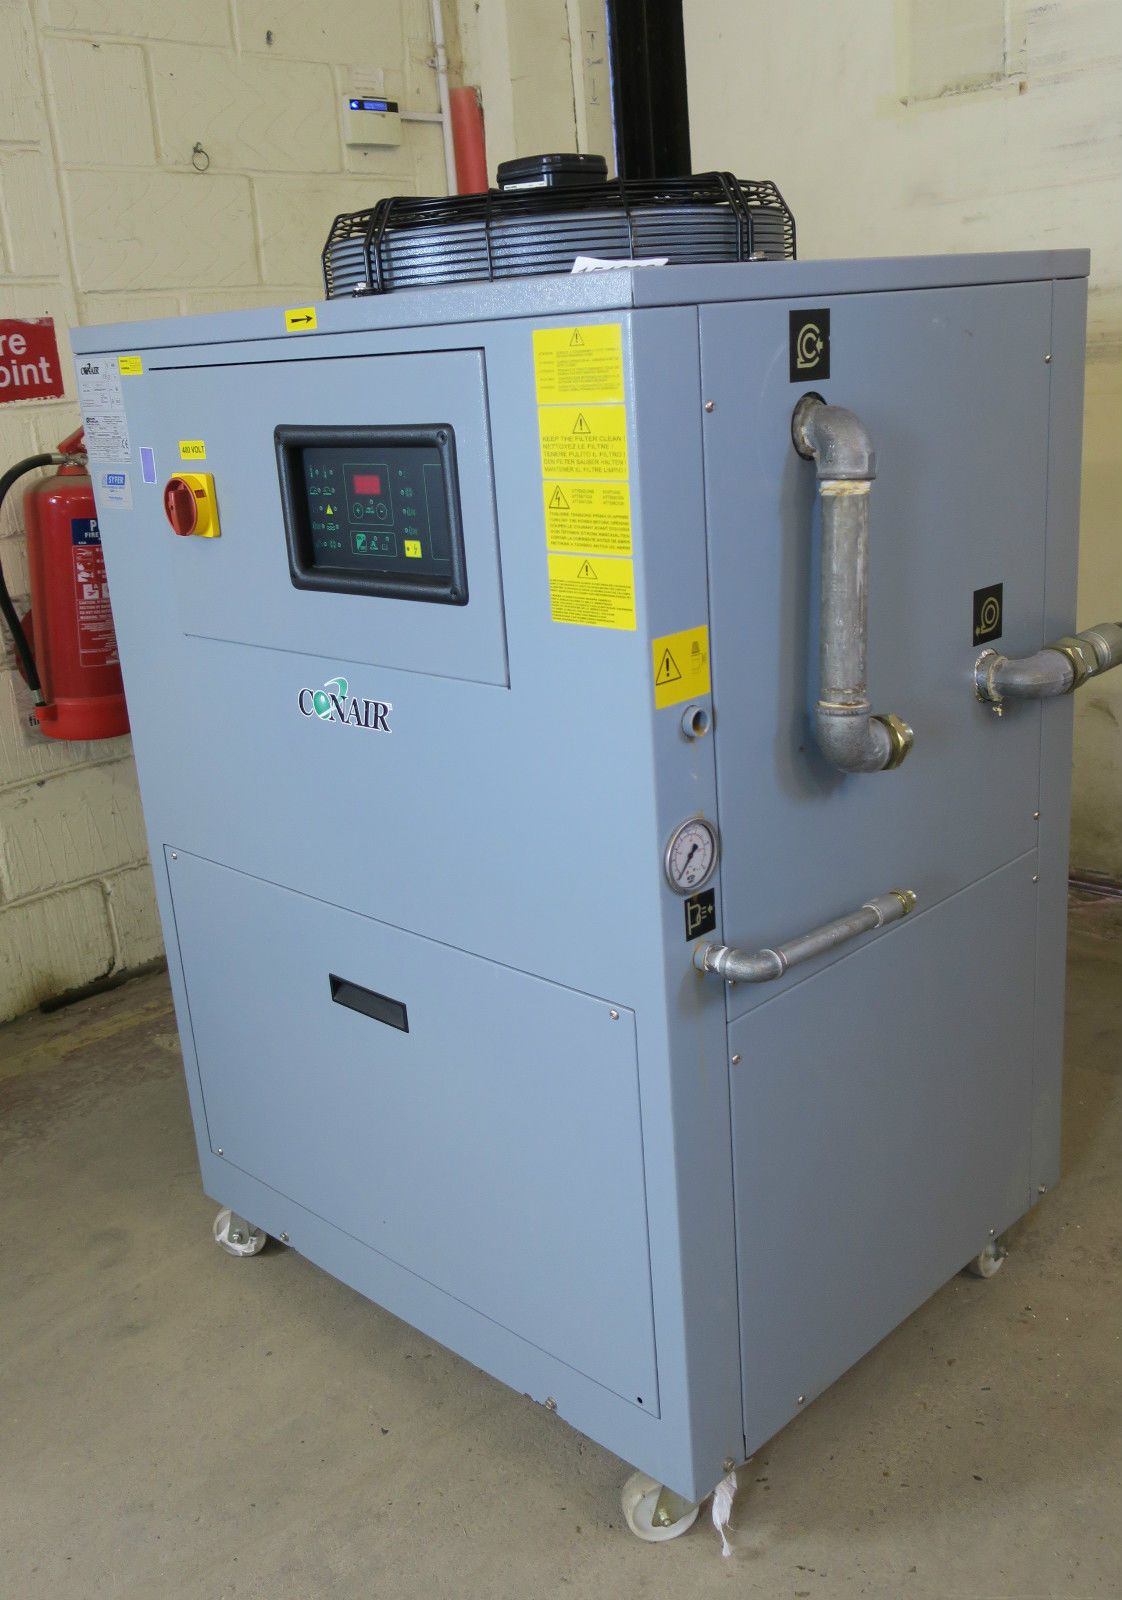 ConAir GC A18 21kW Air Cooled Process Water R407c Industrial Chiller #ABAA20